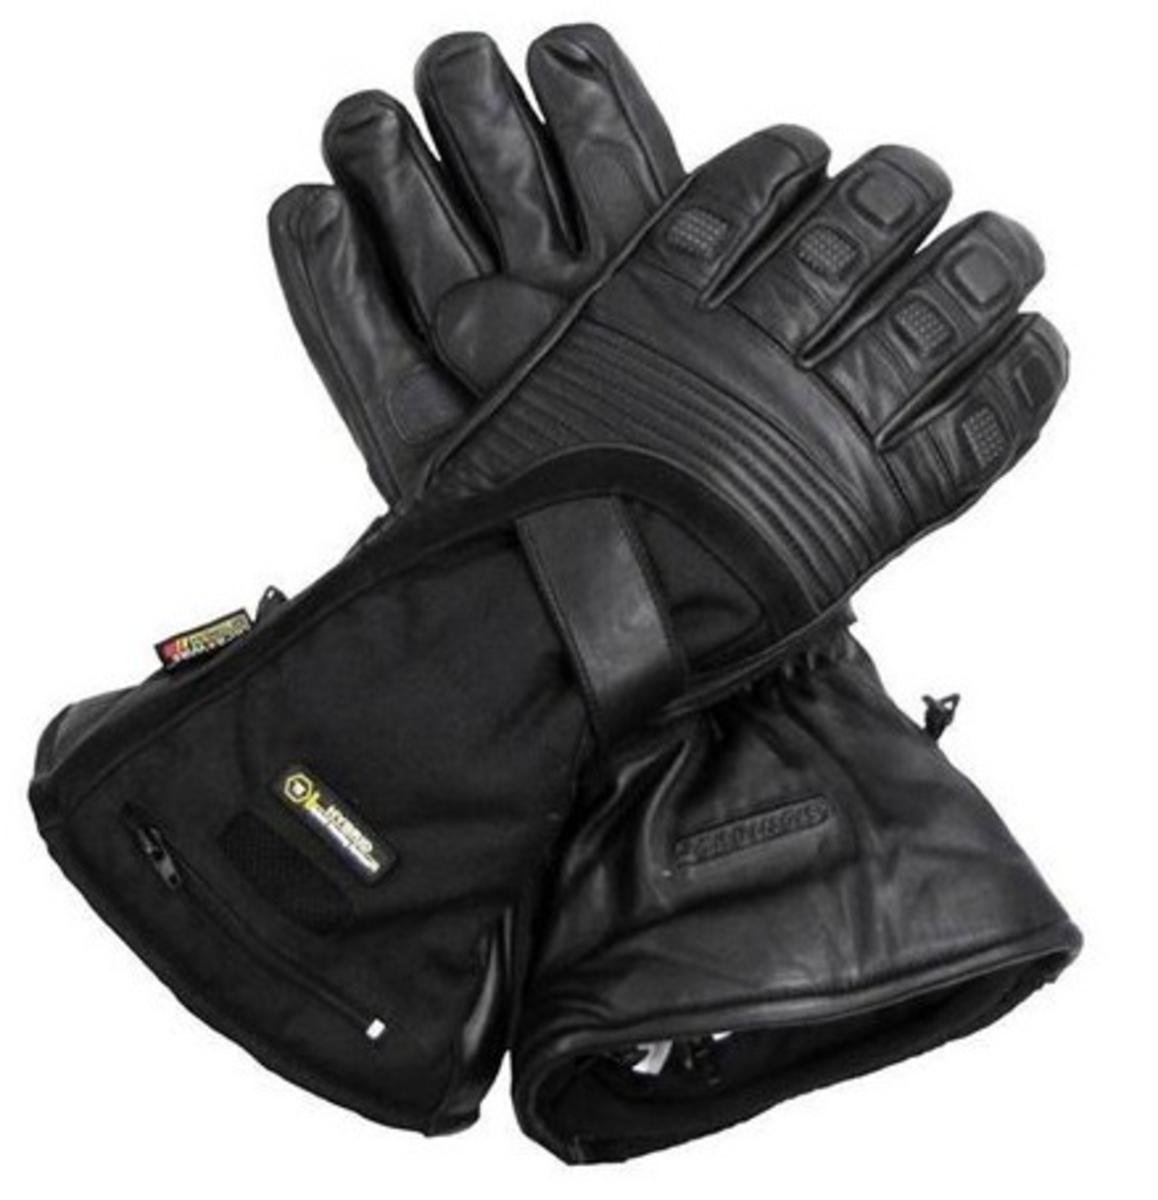 Best Heated Gloves In 2021 Reviews (For Both Man & Woman) 6